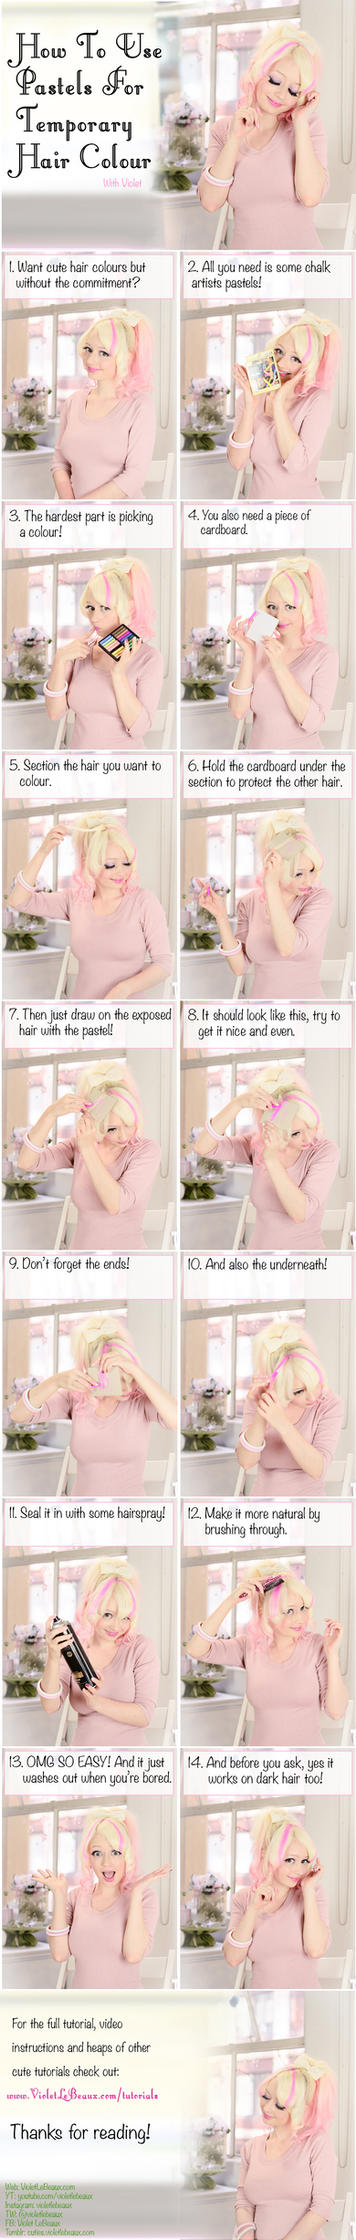 How To Use Pastels For Temporary Hair Colour by VioletLeBeaux